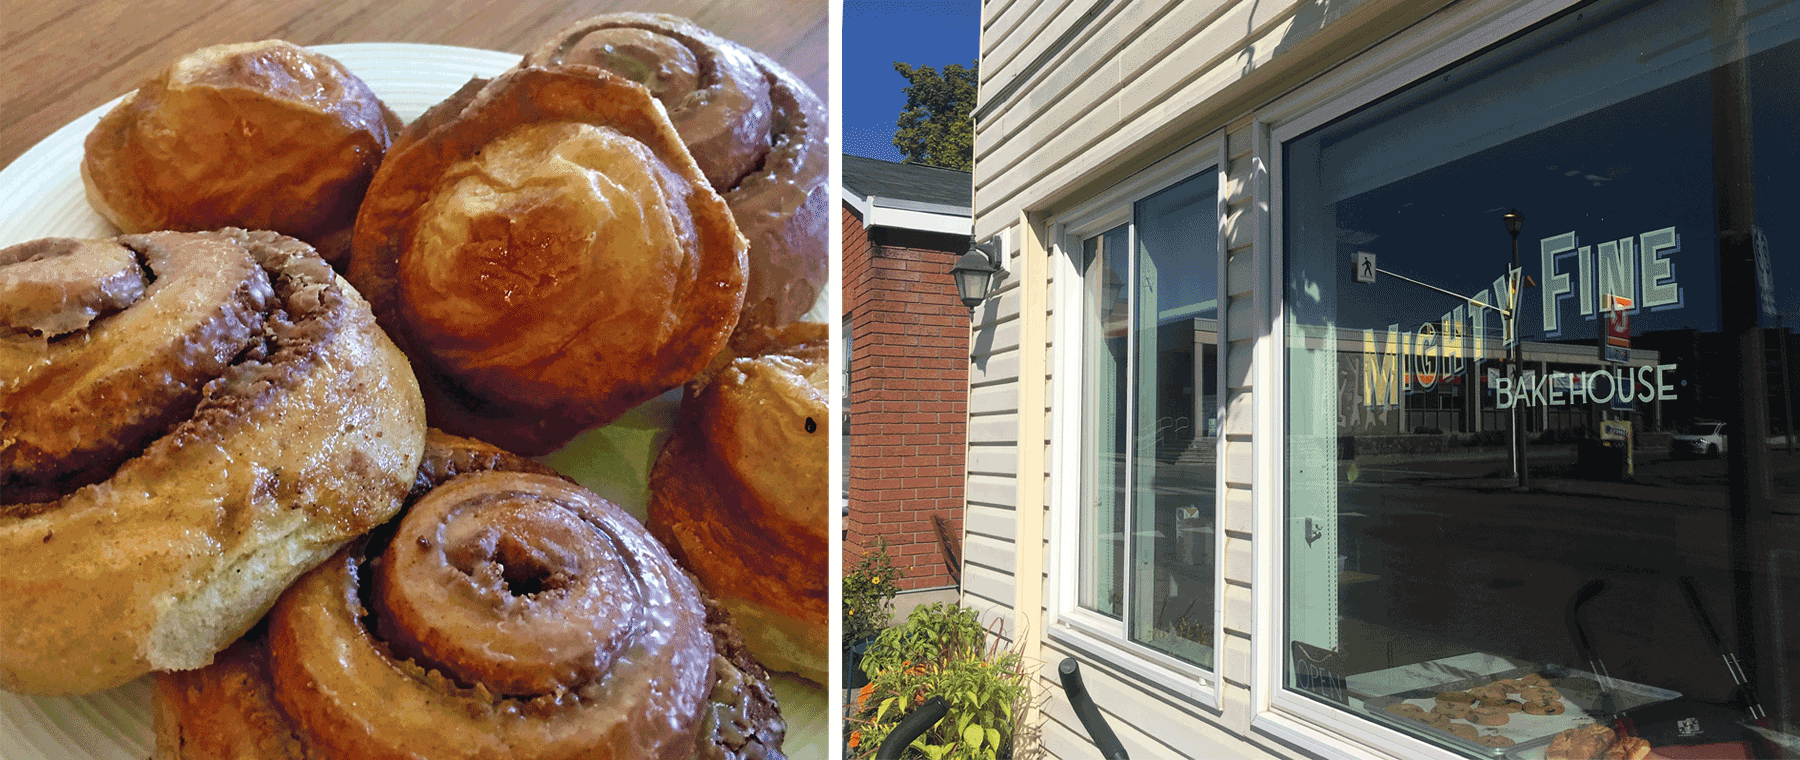 Road trip! Head to Arnprior to check out Mighty Fine Bakehouse — and an old-growth forest